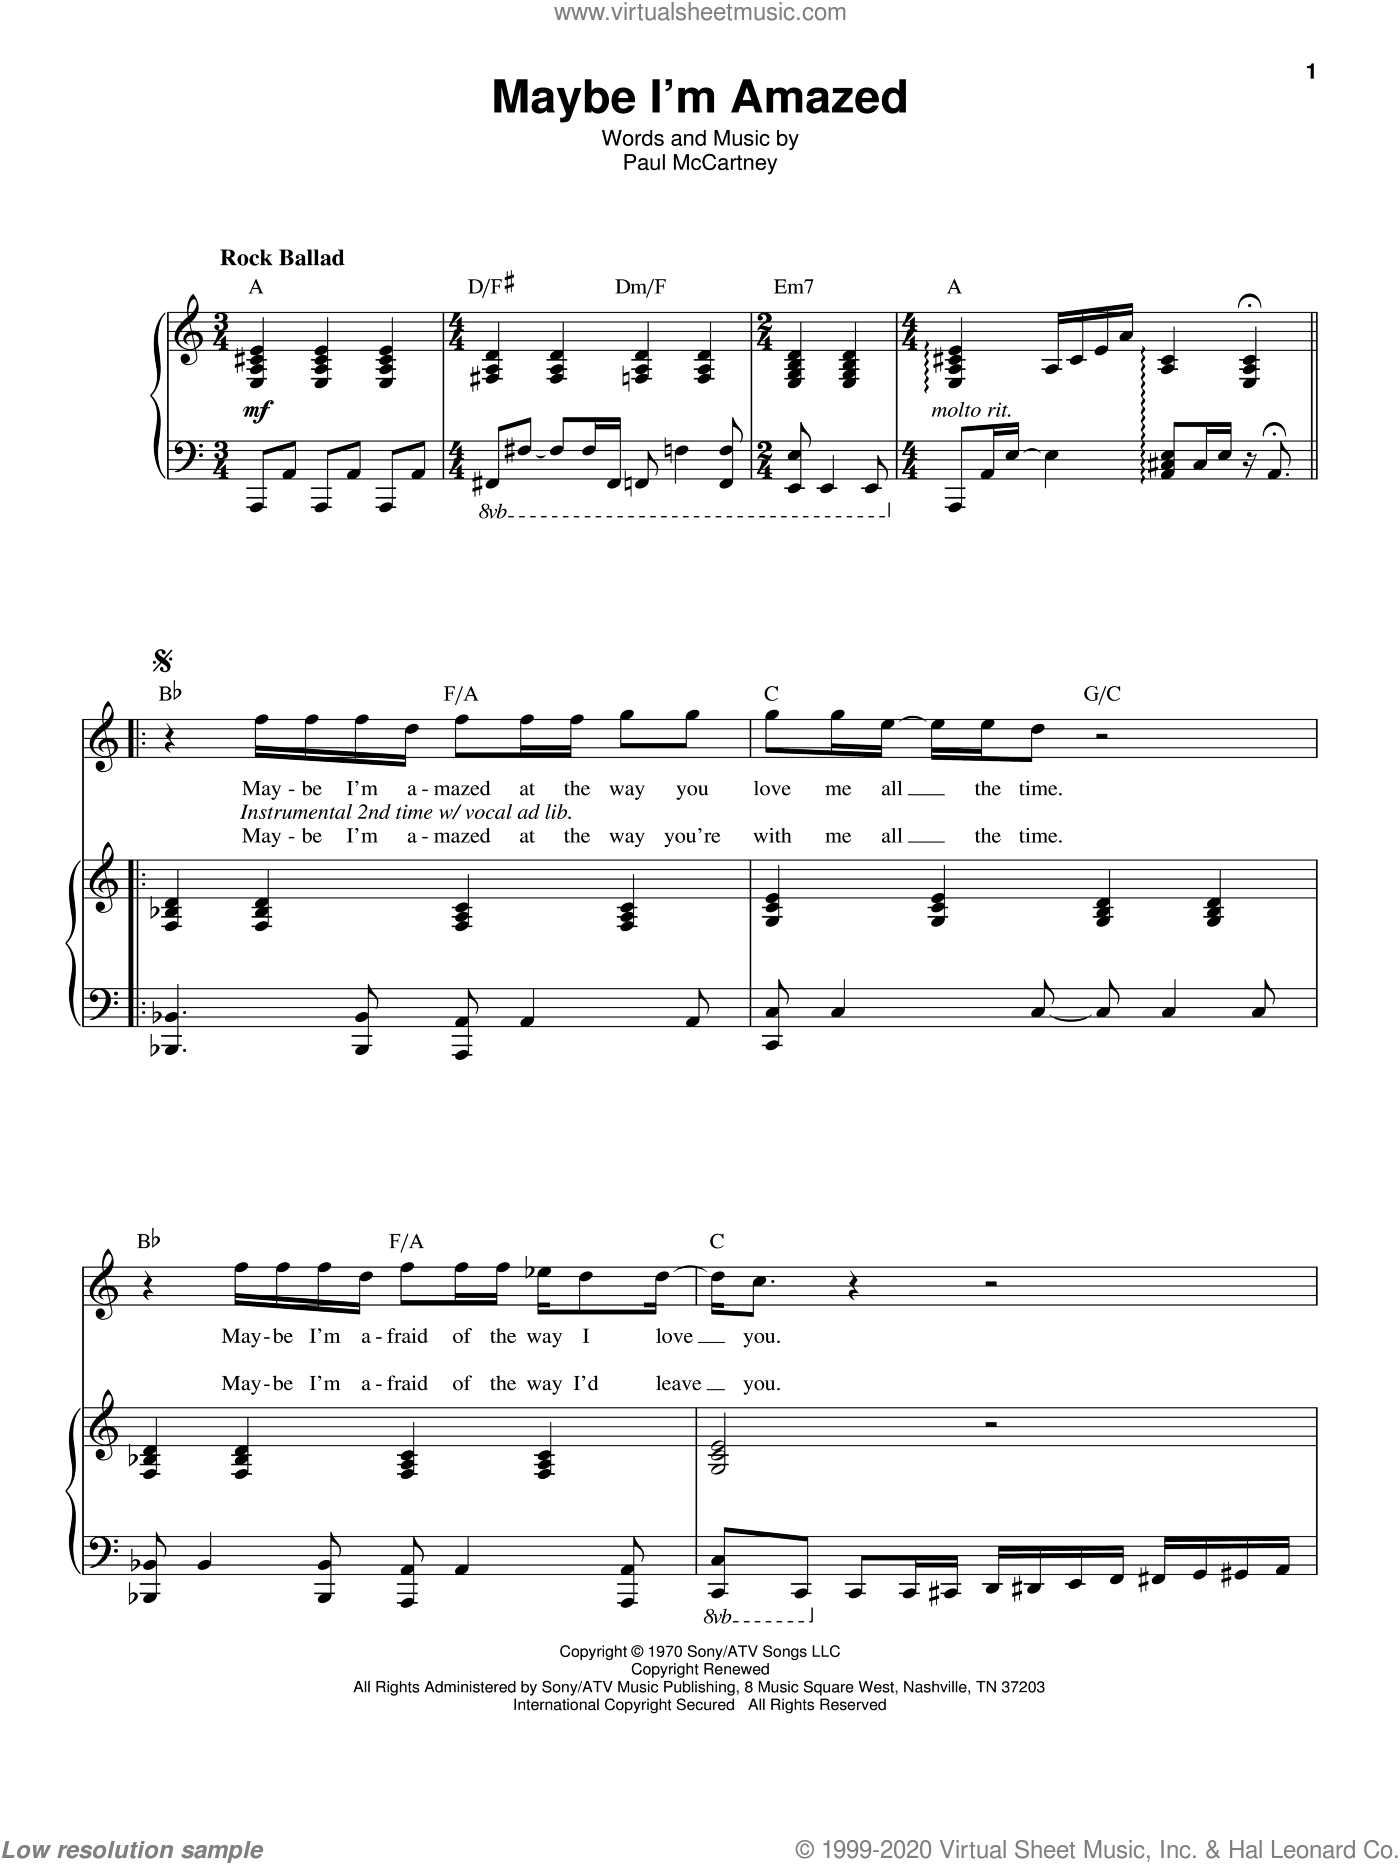 Maybe I'm Amazed sheet music for voice and piano by Paul McCartney, intermediate skill level